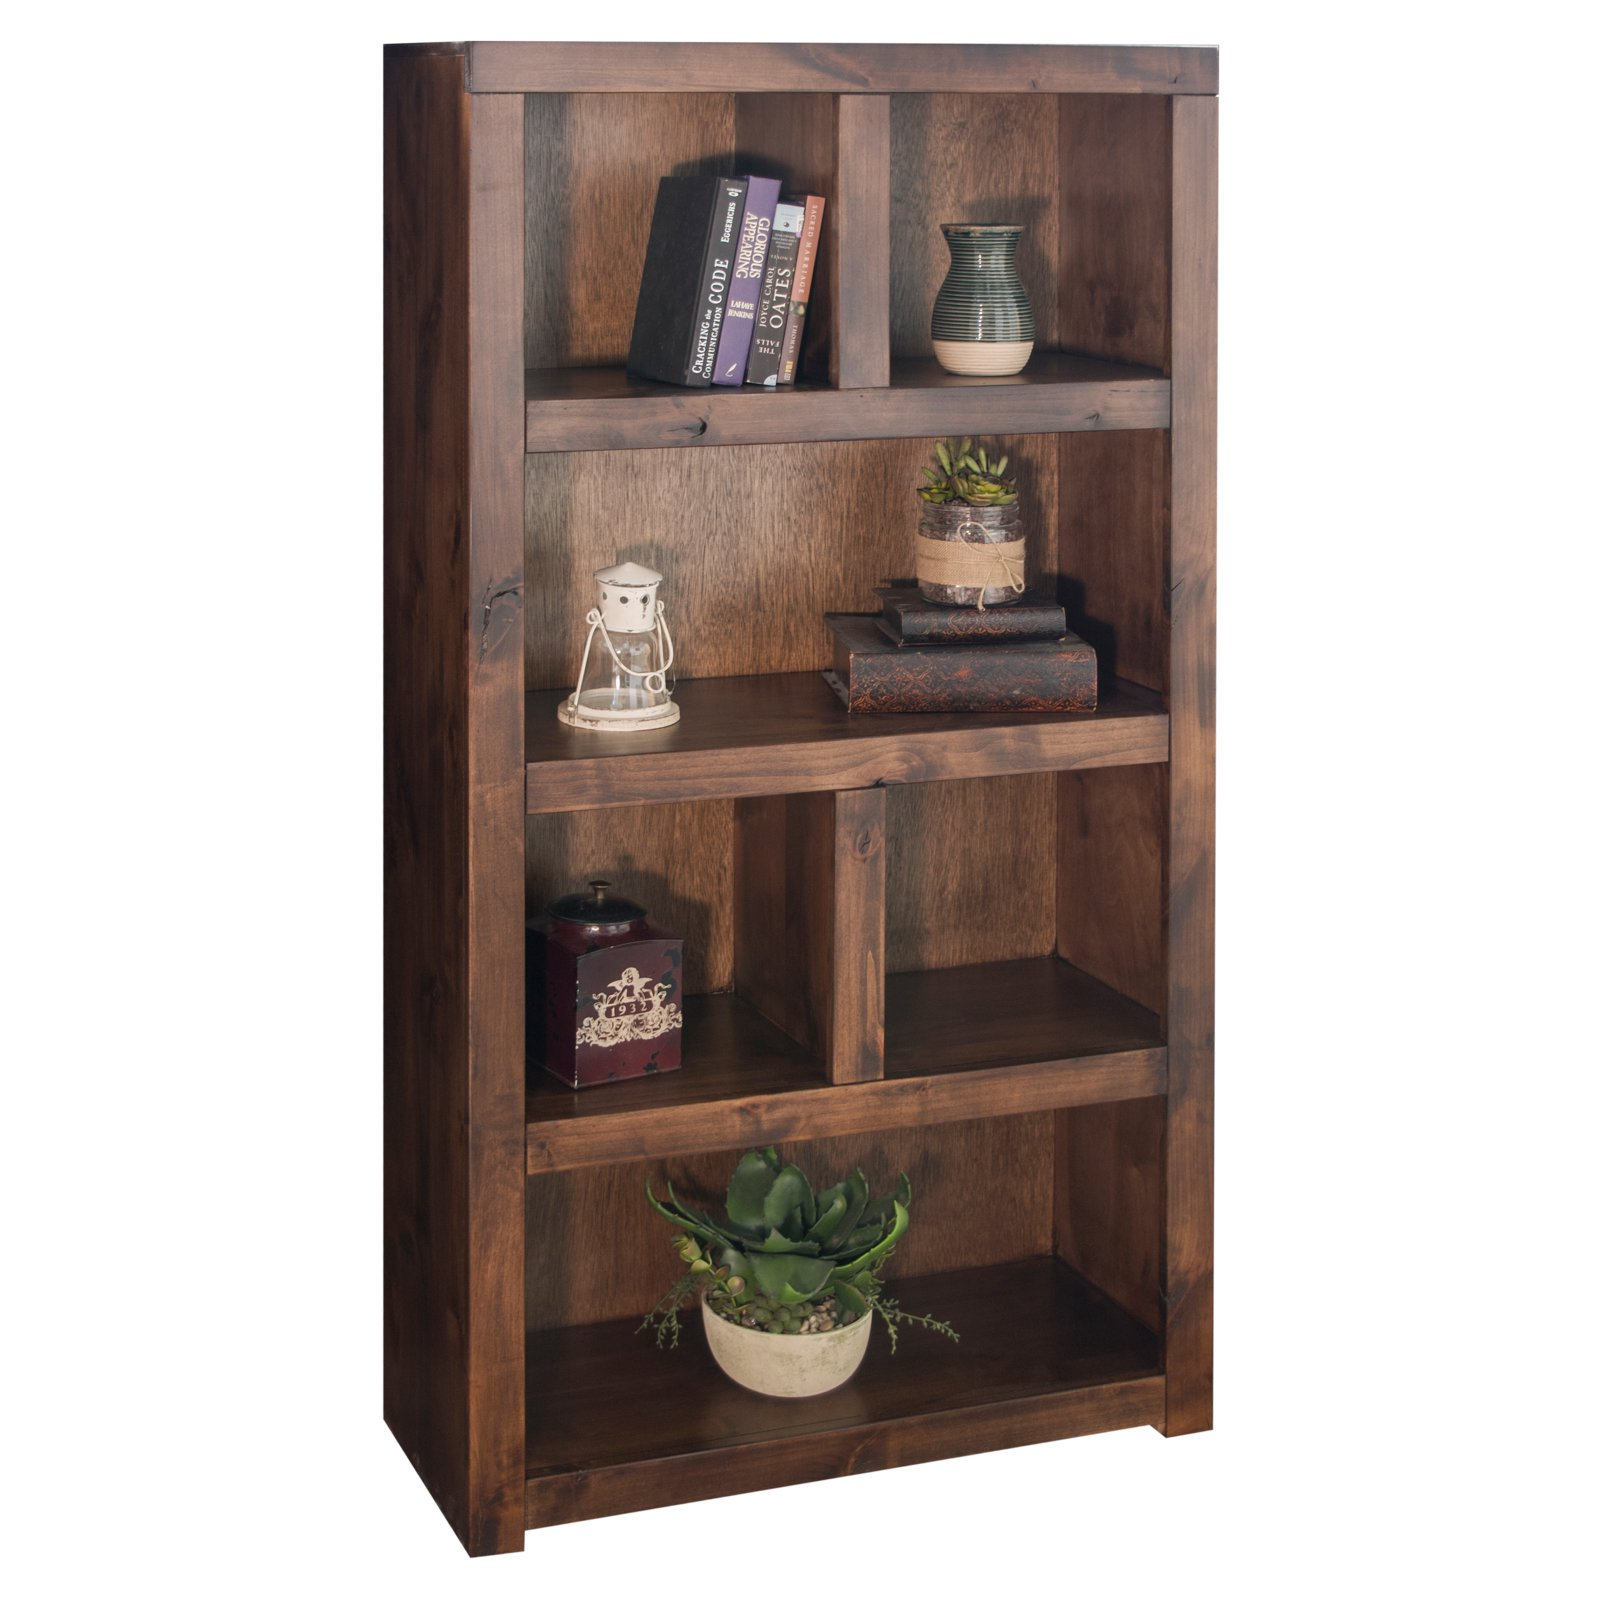 Legends Furniture Sausalito Standard Bookcase